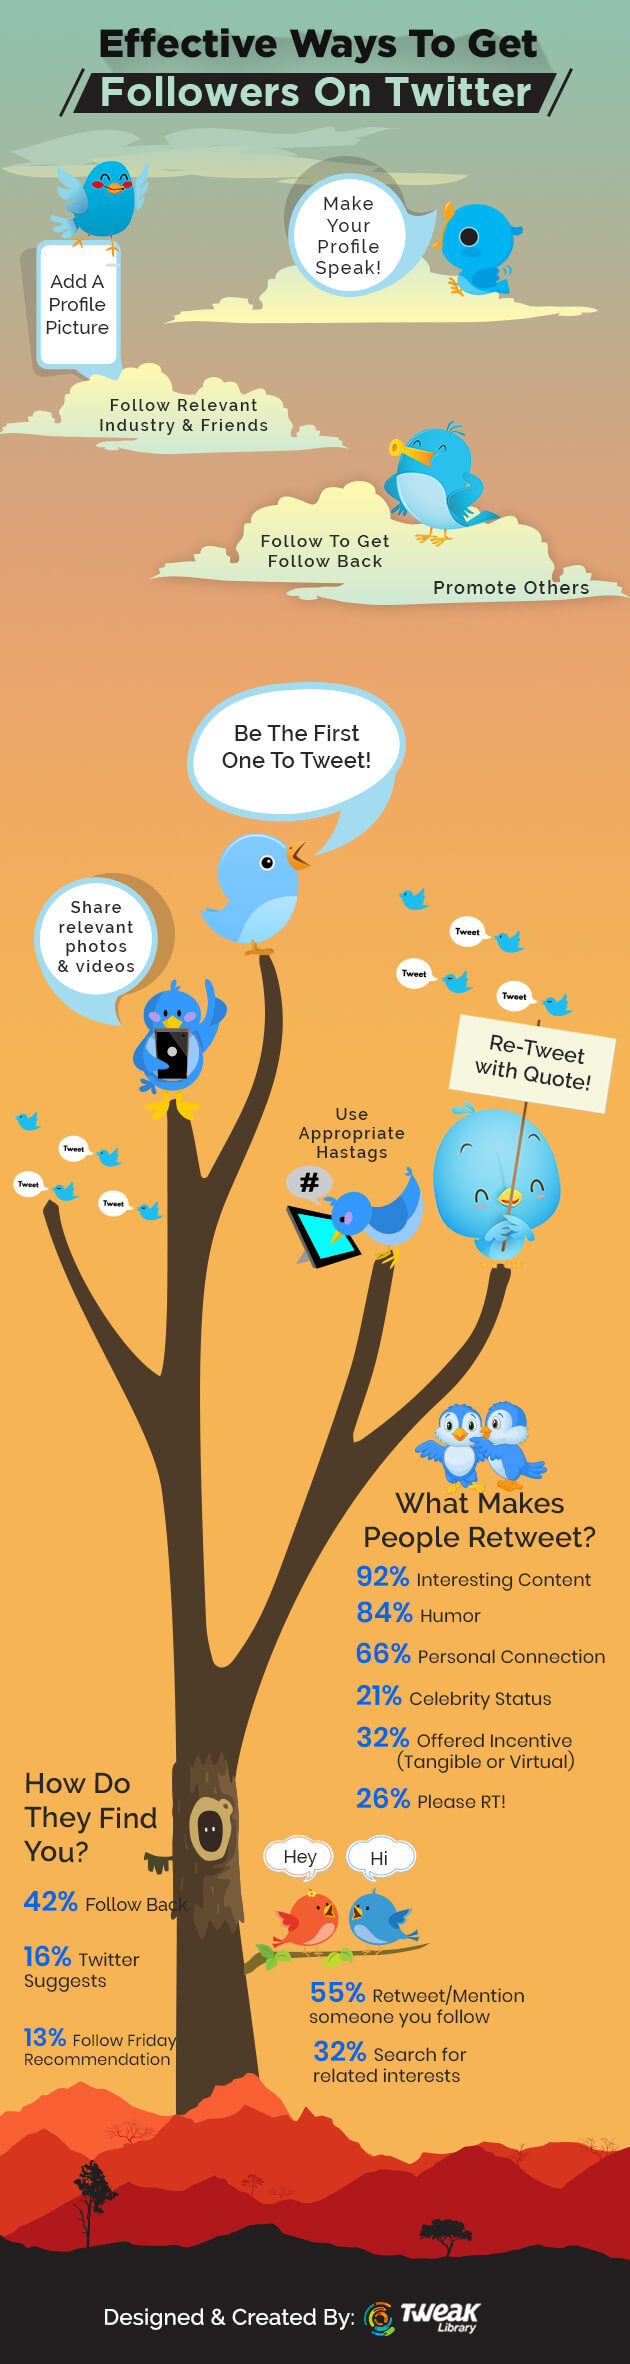 Infographic: Get more followers on Twitter